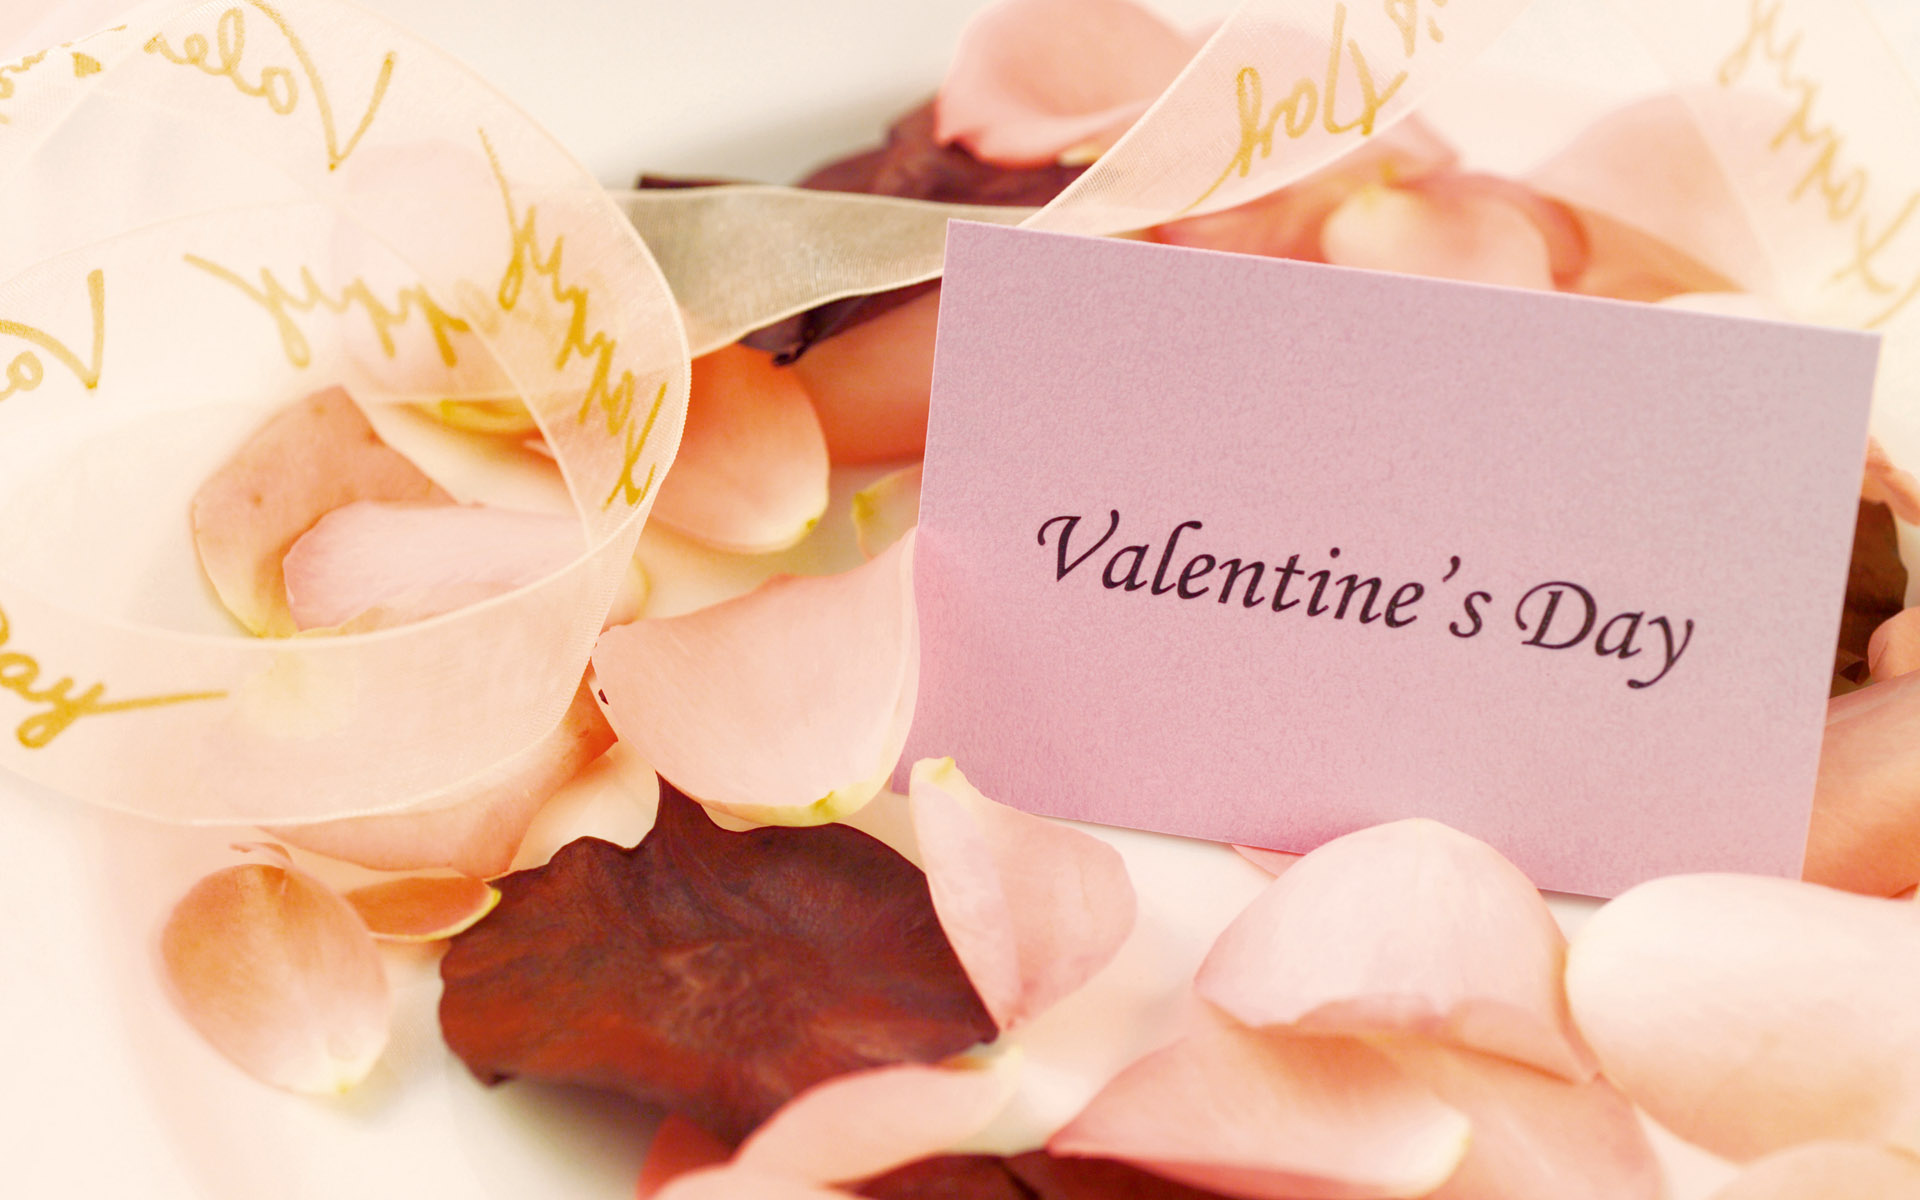 Valentines Day Wallpapers and Backgrounds 1920x1200